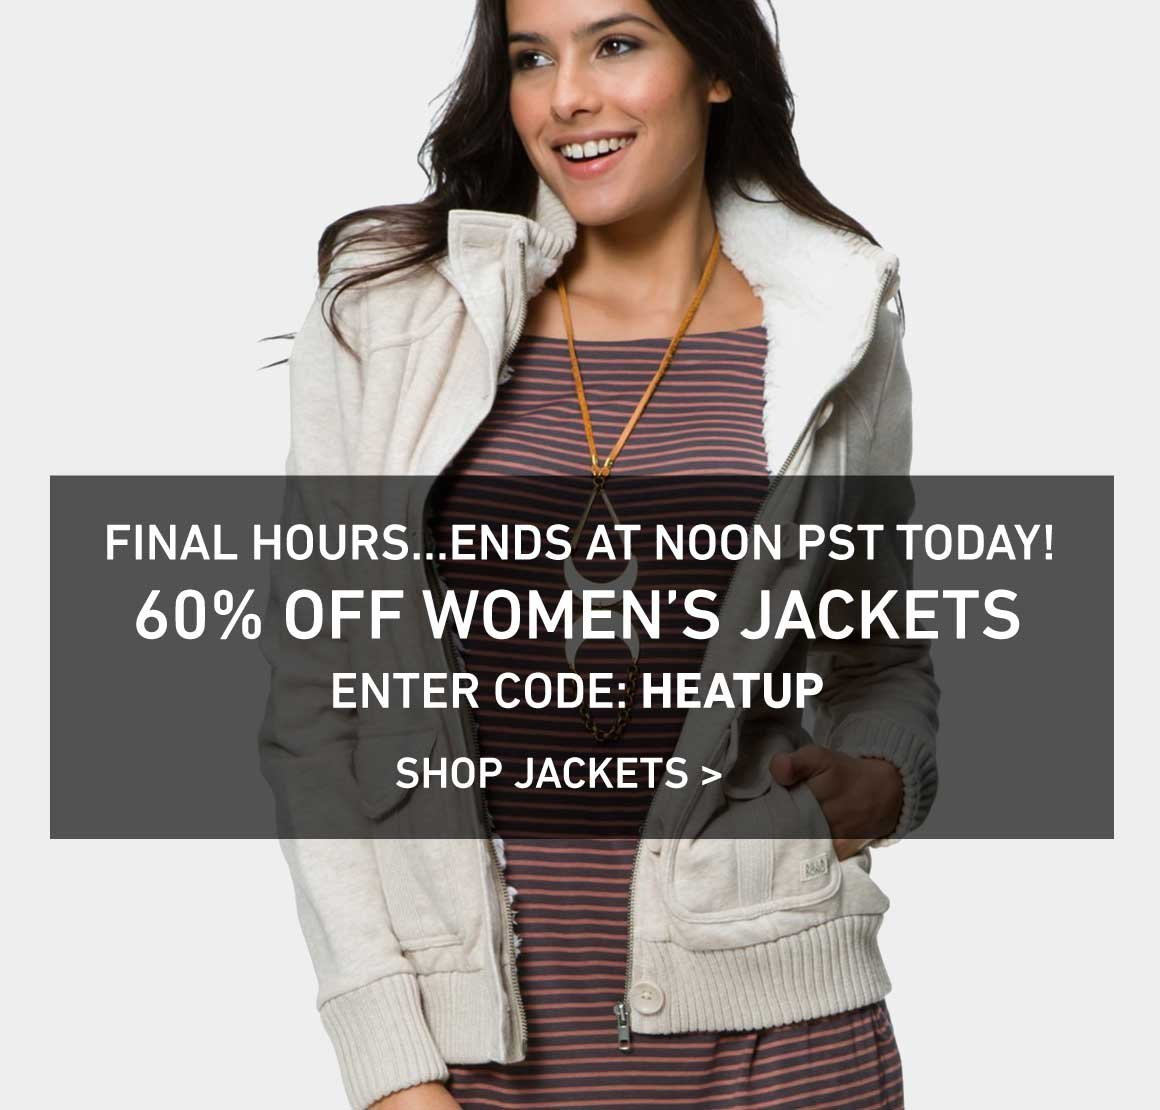 Final Hours: 60% Women's Jackets Ends At Noon! Enter Code: HEATUP